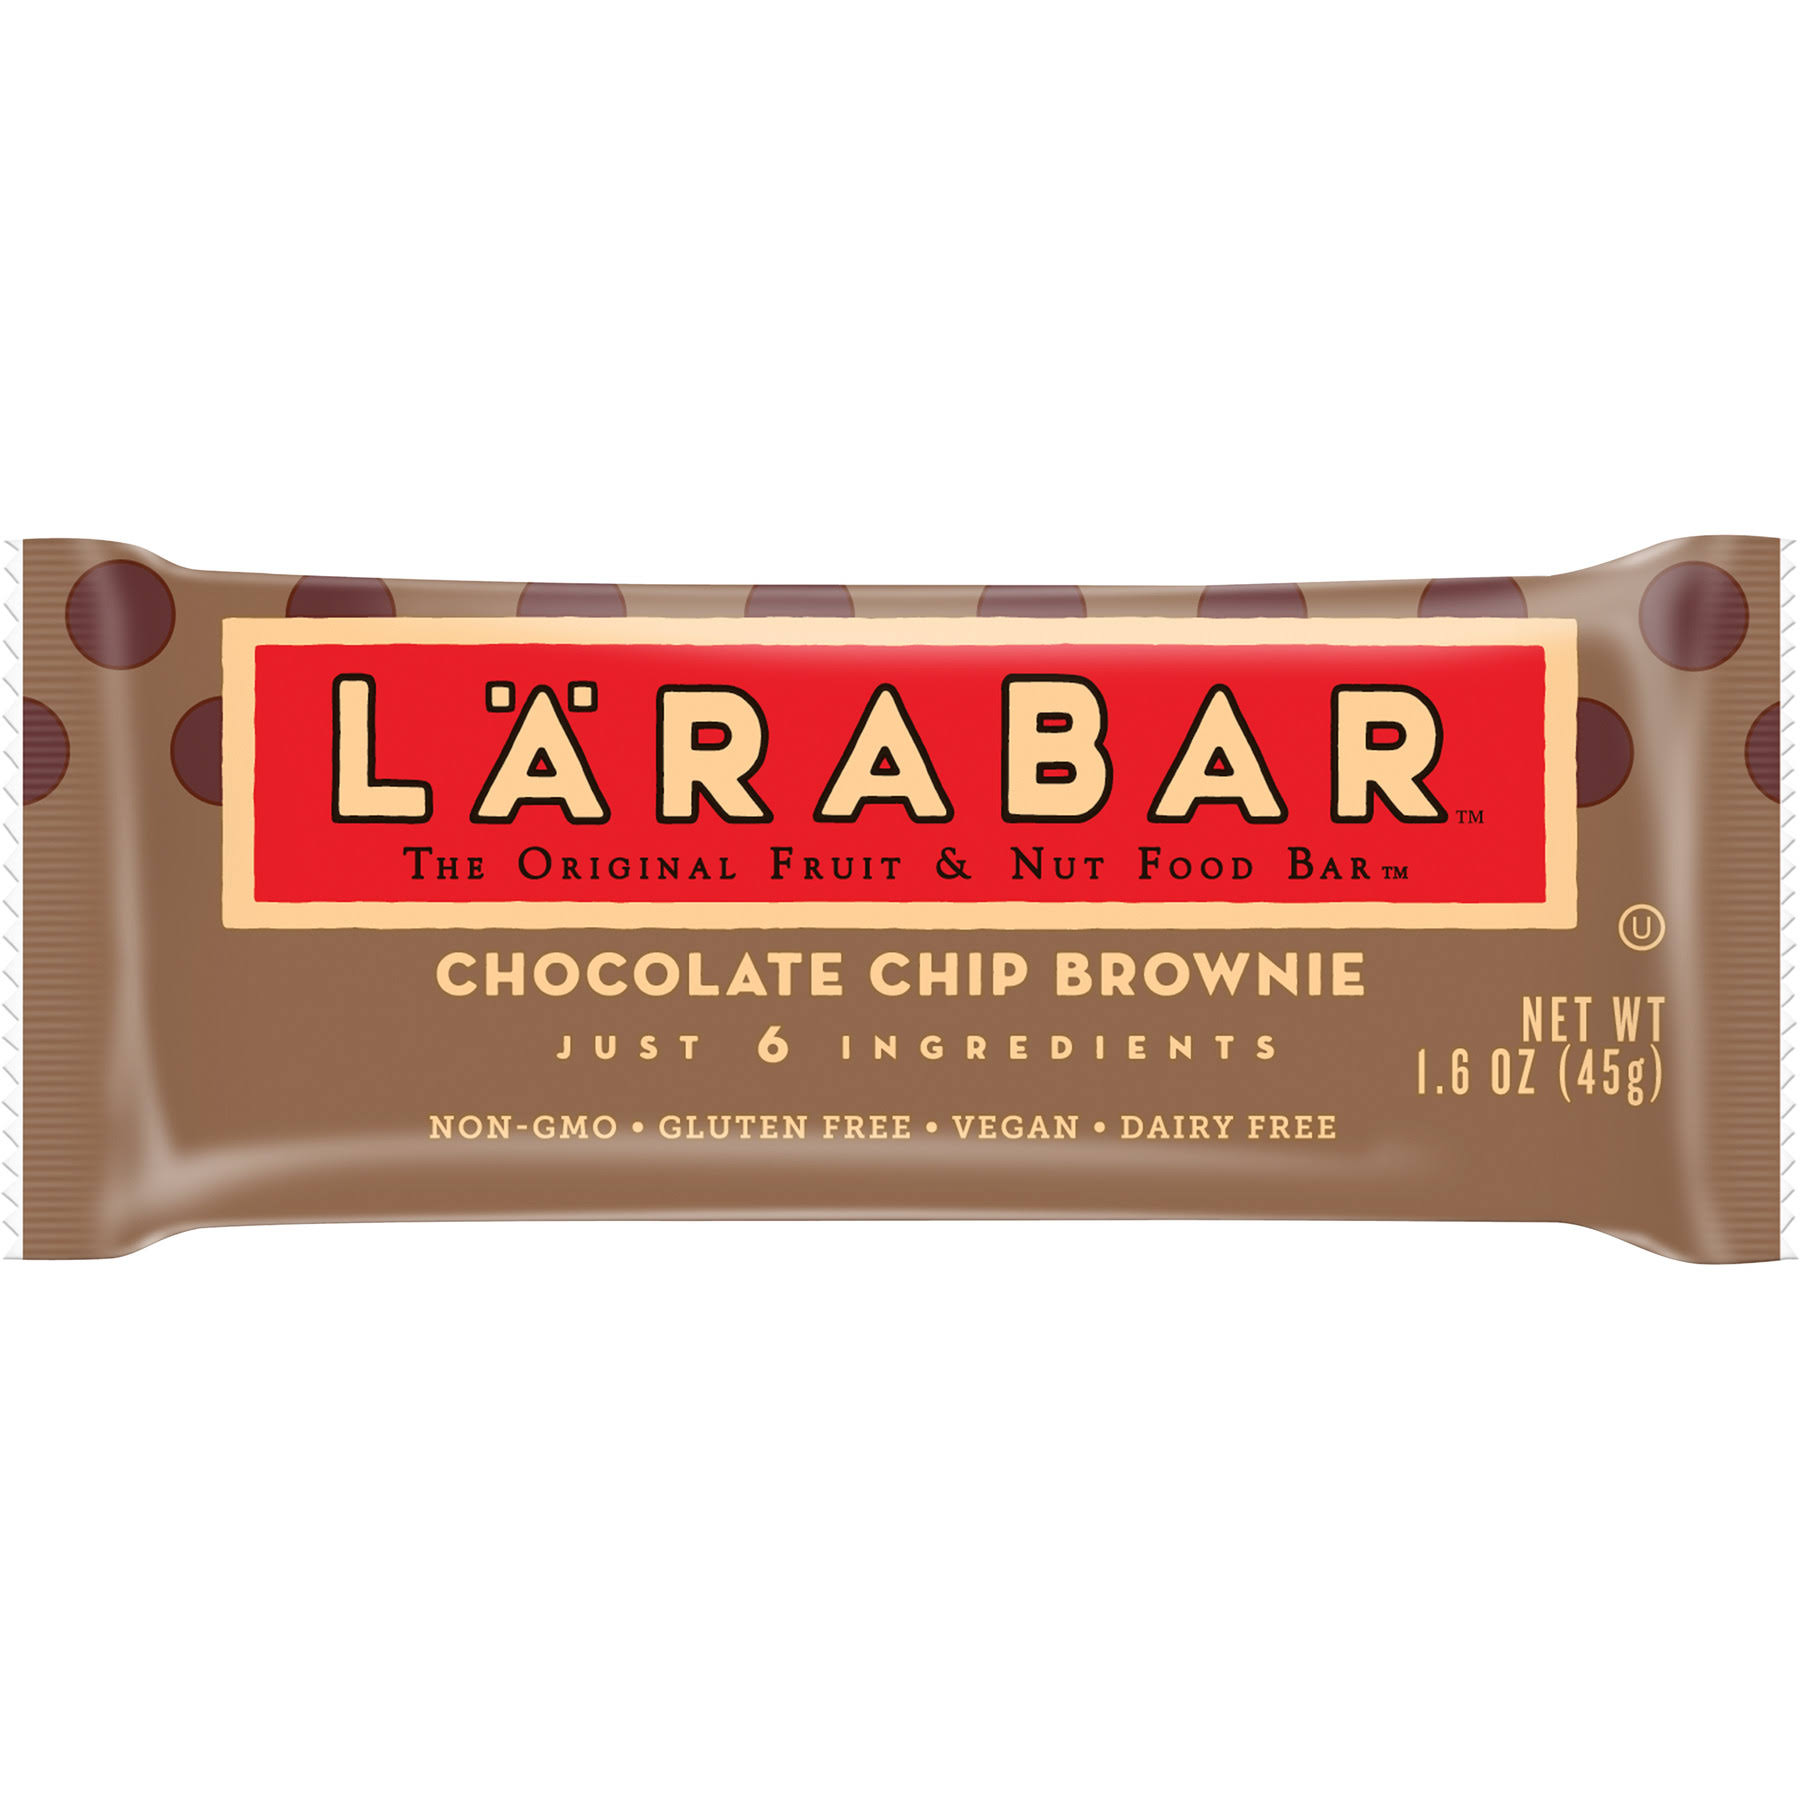 Larabar Fruit & Nut Food Bar, Chocolate Chip Brownie - 1.6 oz packet